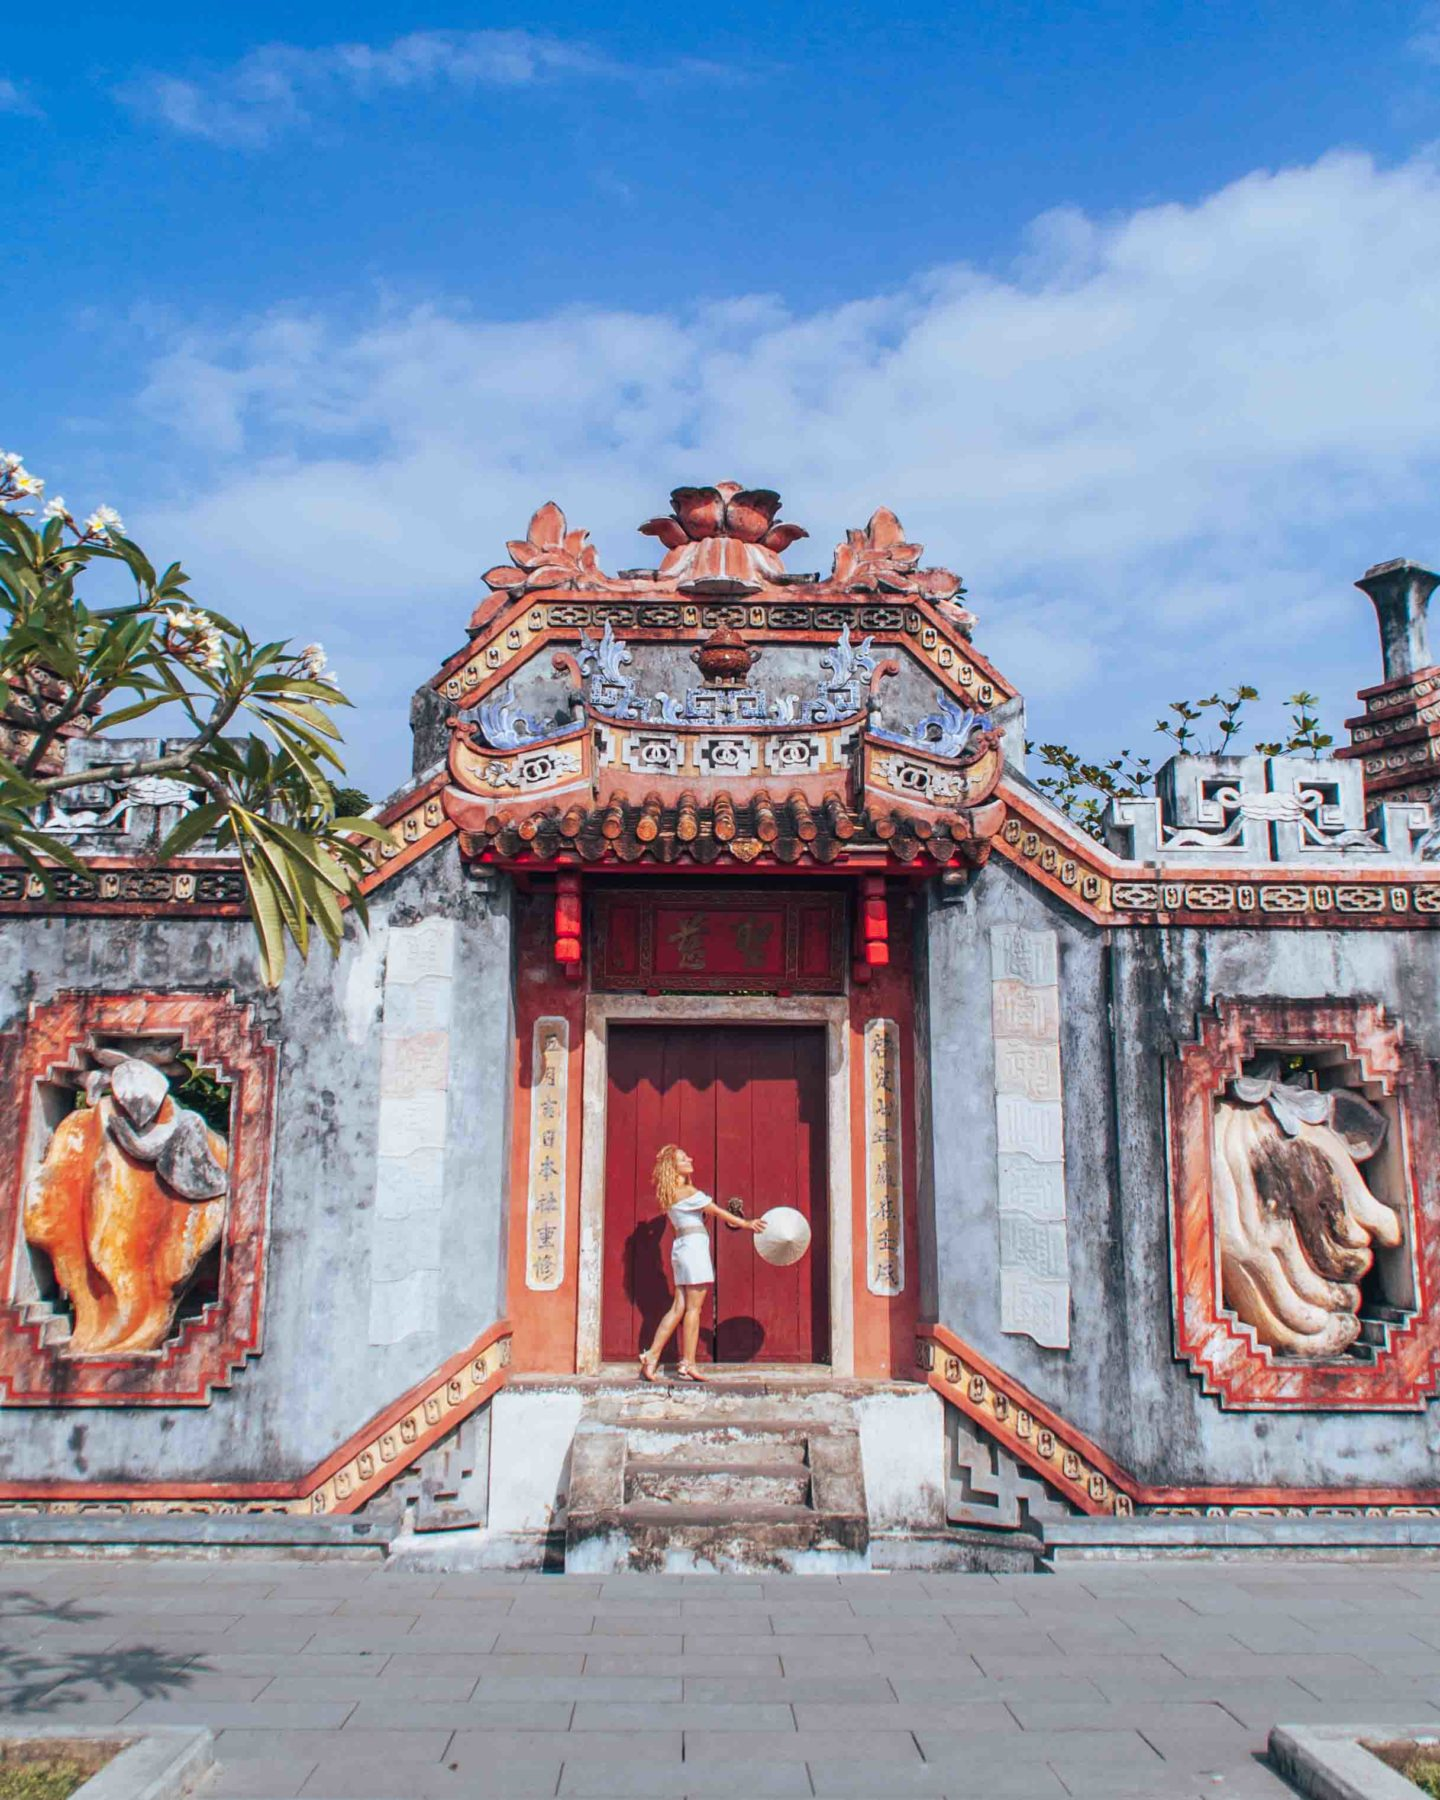 The Ba Mu temple gate in Hoi An, Vietnam